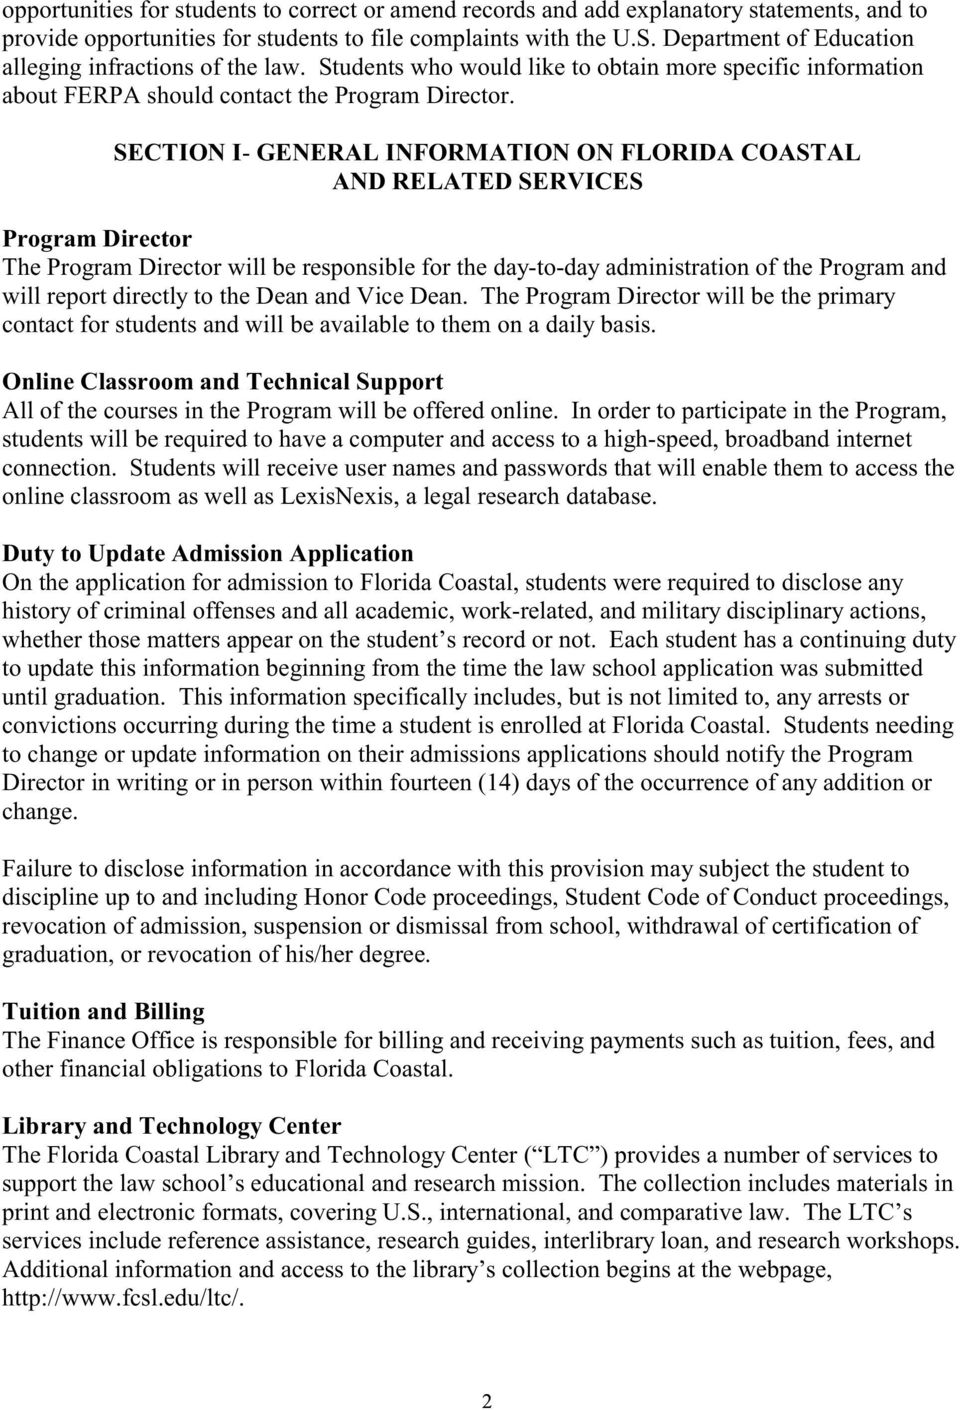 SECTION I- GENERAL INFORMATION ON FLORIDA COASTAL AND RELATED SERVICES Program Director The Program Director will be responsible for the day-to-day administration of the Program and will report